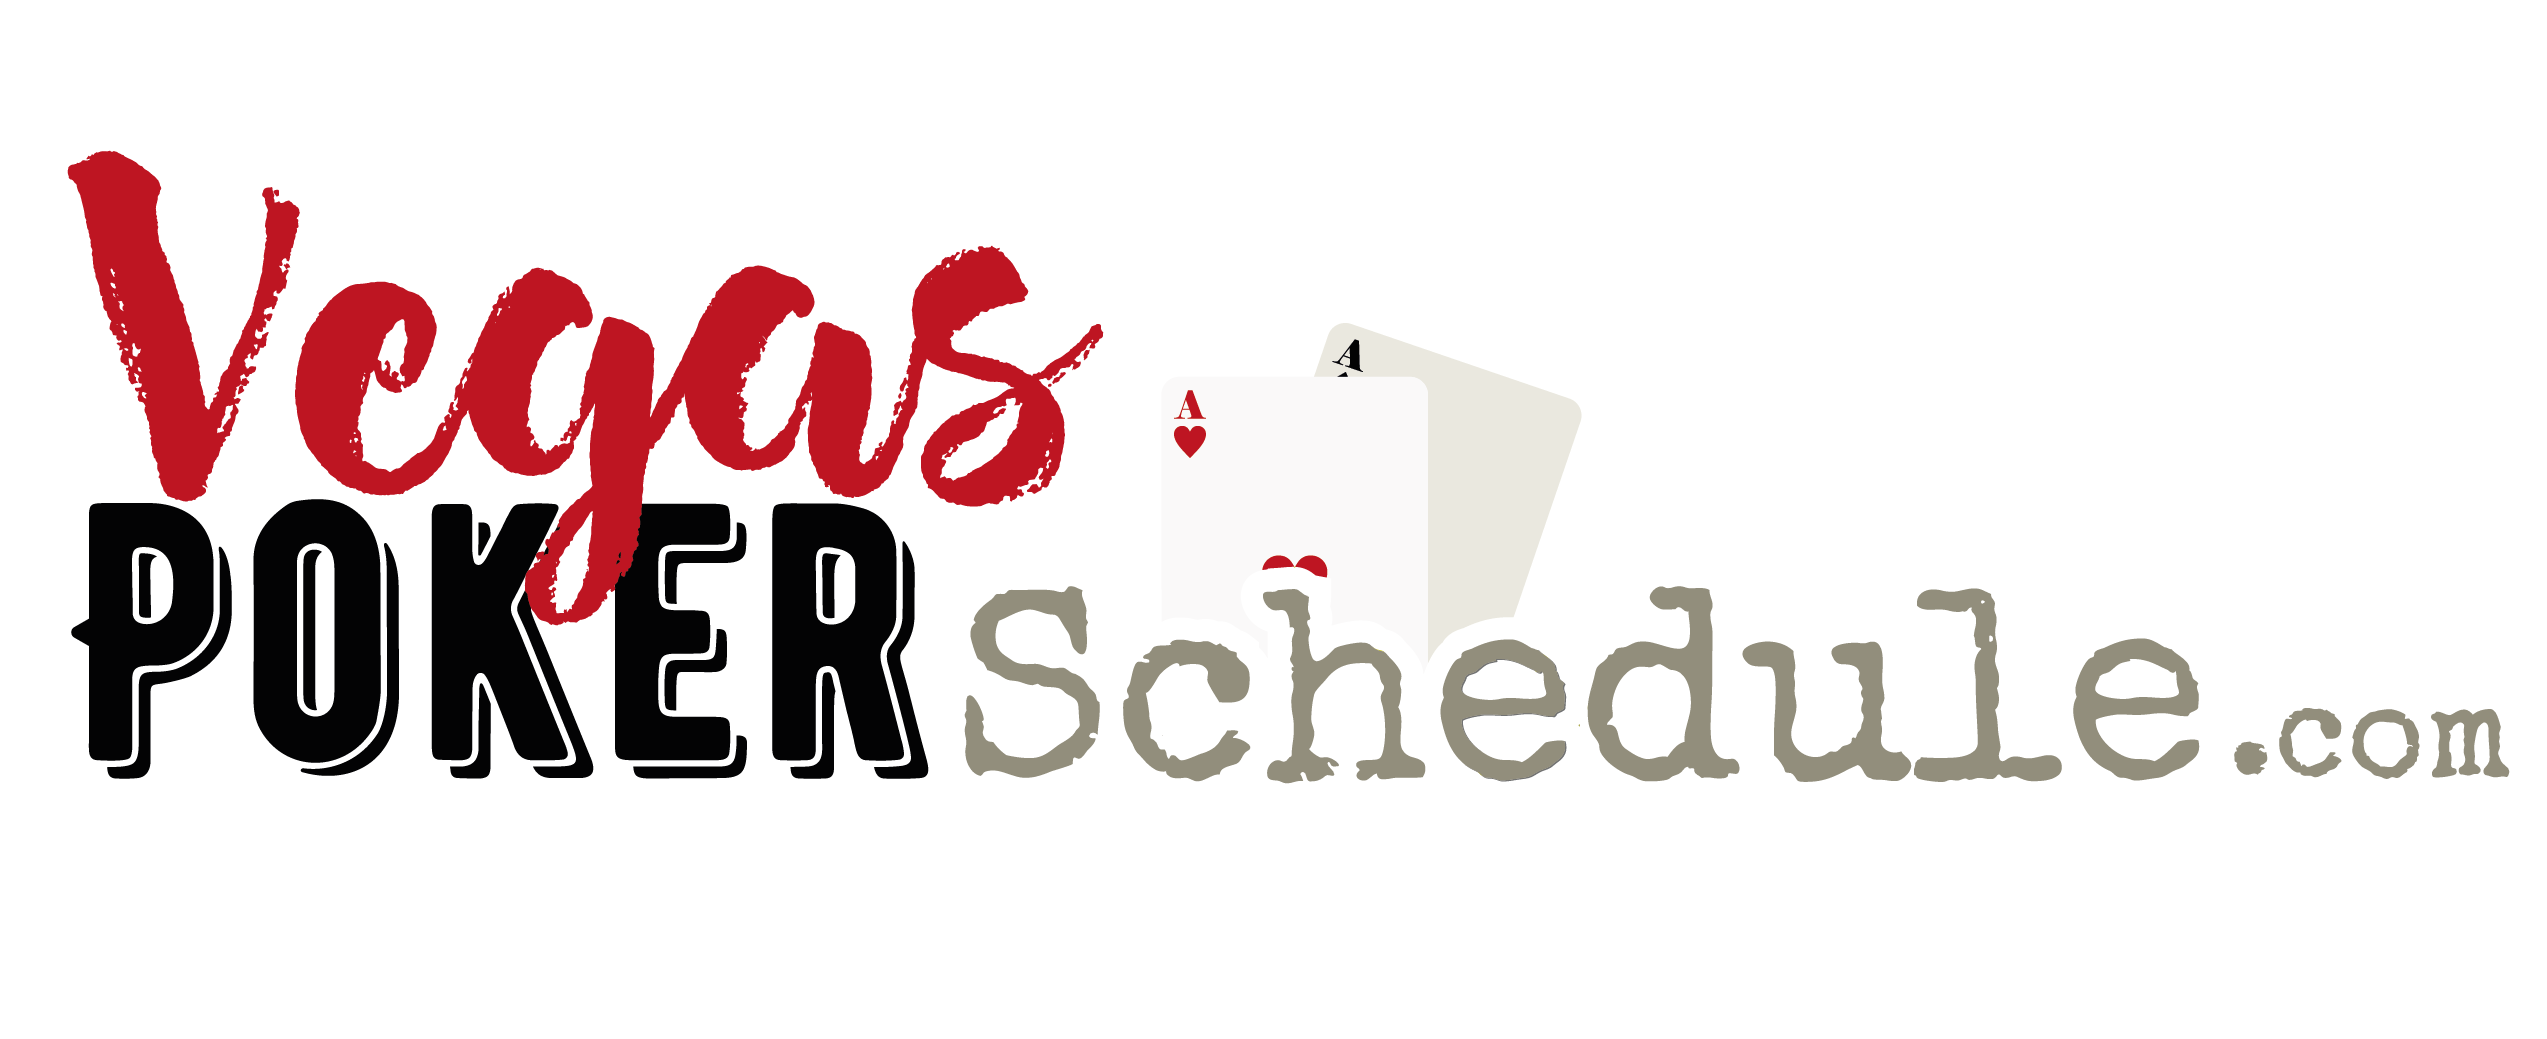 Vegas Poker Schedule 2019